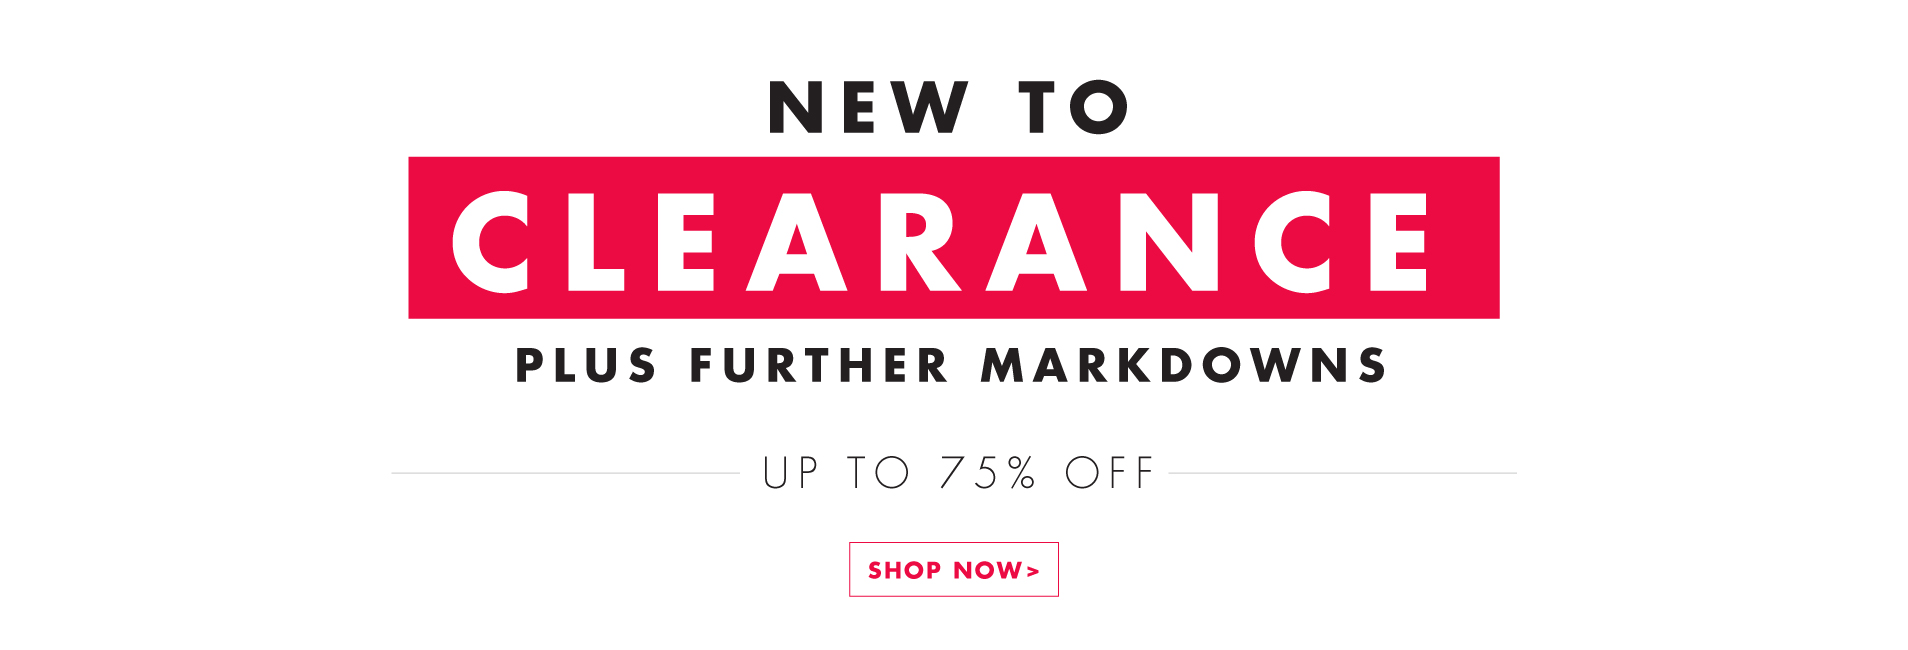 New To Clearance plus further markdowns - up to 75% Off